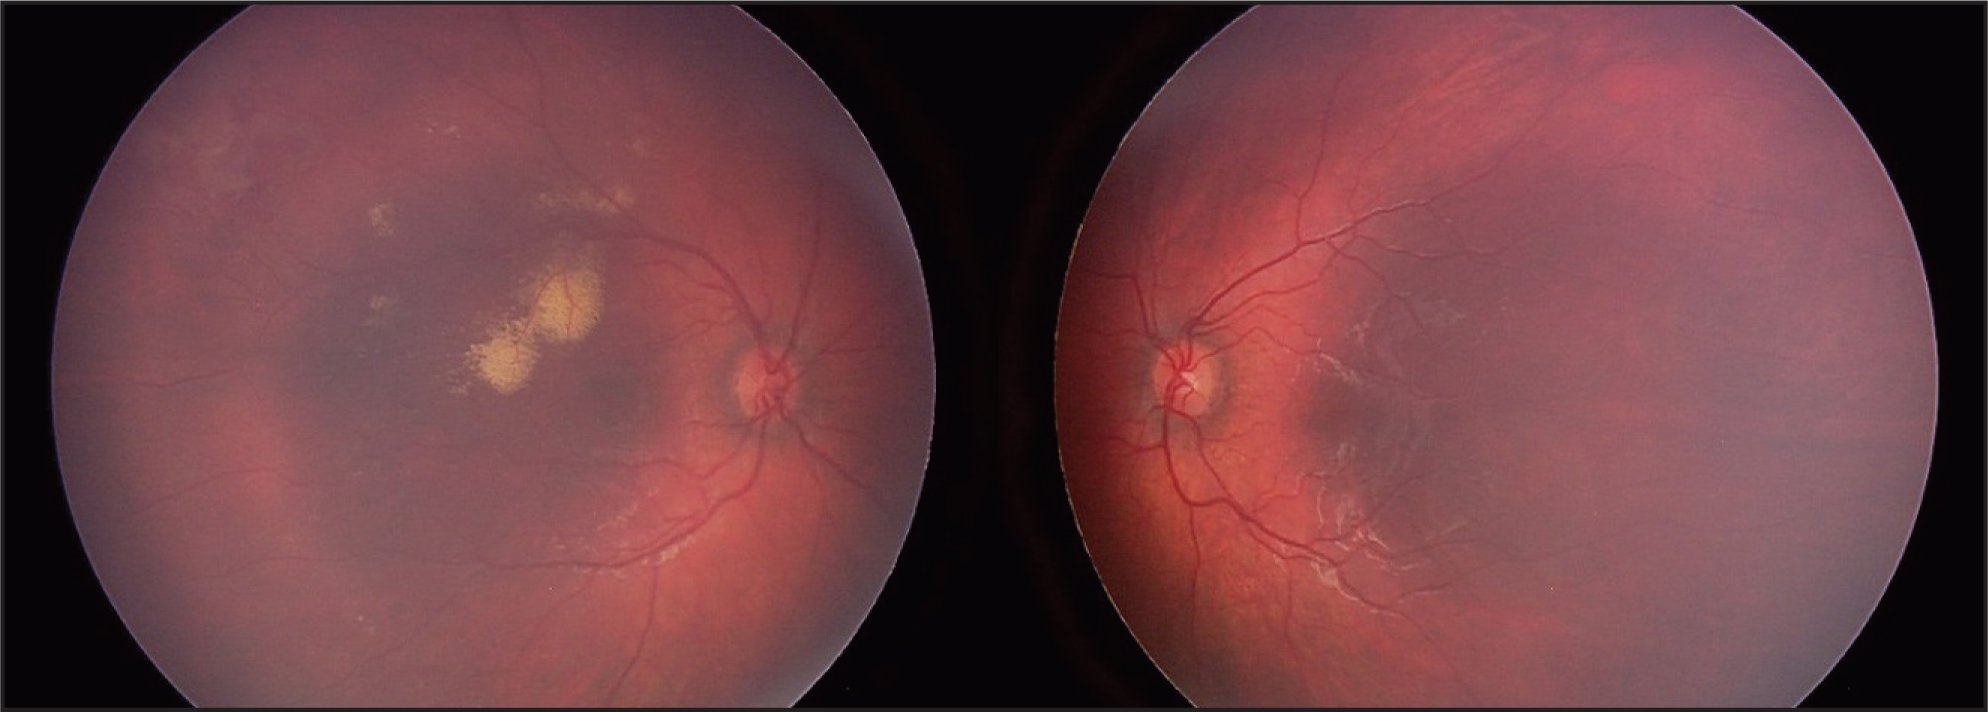 Unilateral Coats' Disease with Macular Exudate and Superotemporal Retinal Telangiectasias in the Right Eye.